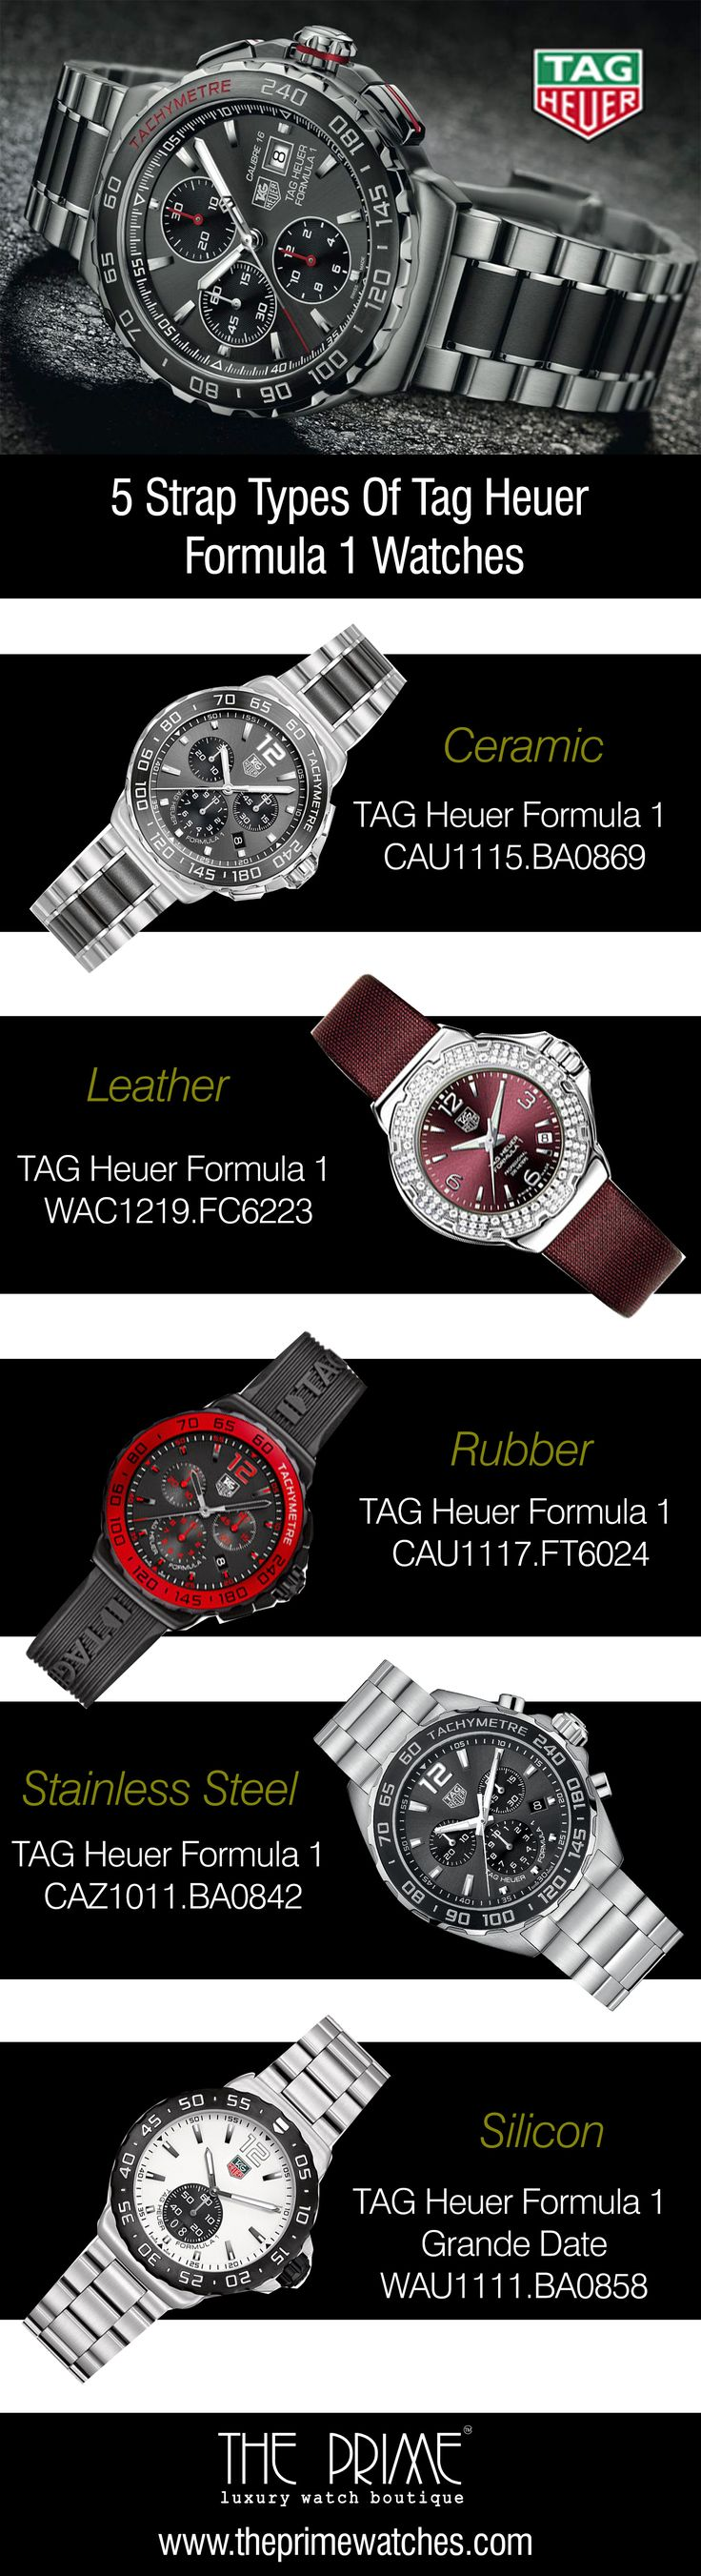 TAG Heuer Formula 1 watches are well known to the watch lovers for their speedy timekeeping. Their designs are inspired by the engineering of Moto GP racing cars. Both men and women watches are there in this collection. From this content, you will get a glimpse of some amazing strap types of TAG Heuer Formula 1 watches.  Strap is a significant portion of a watch.